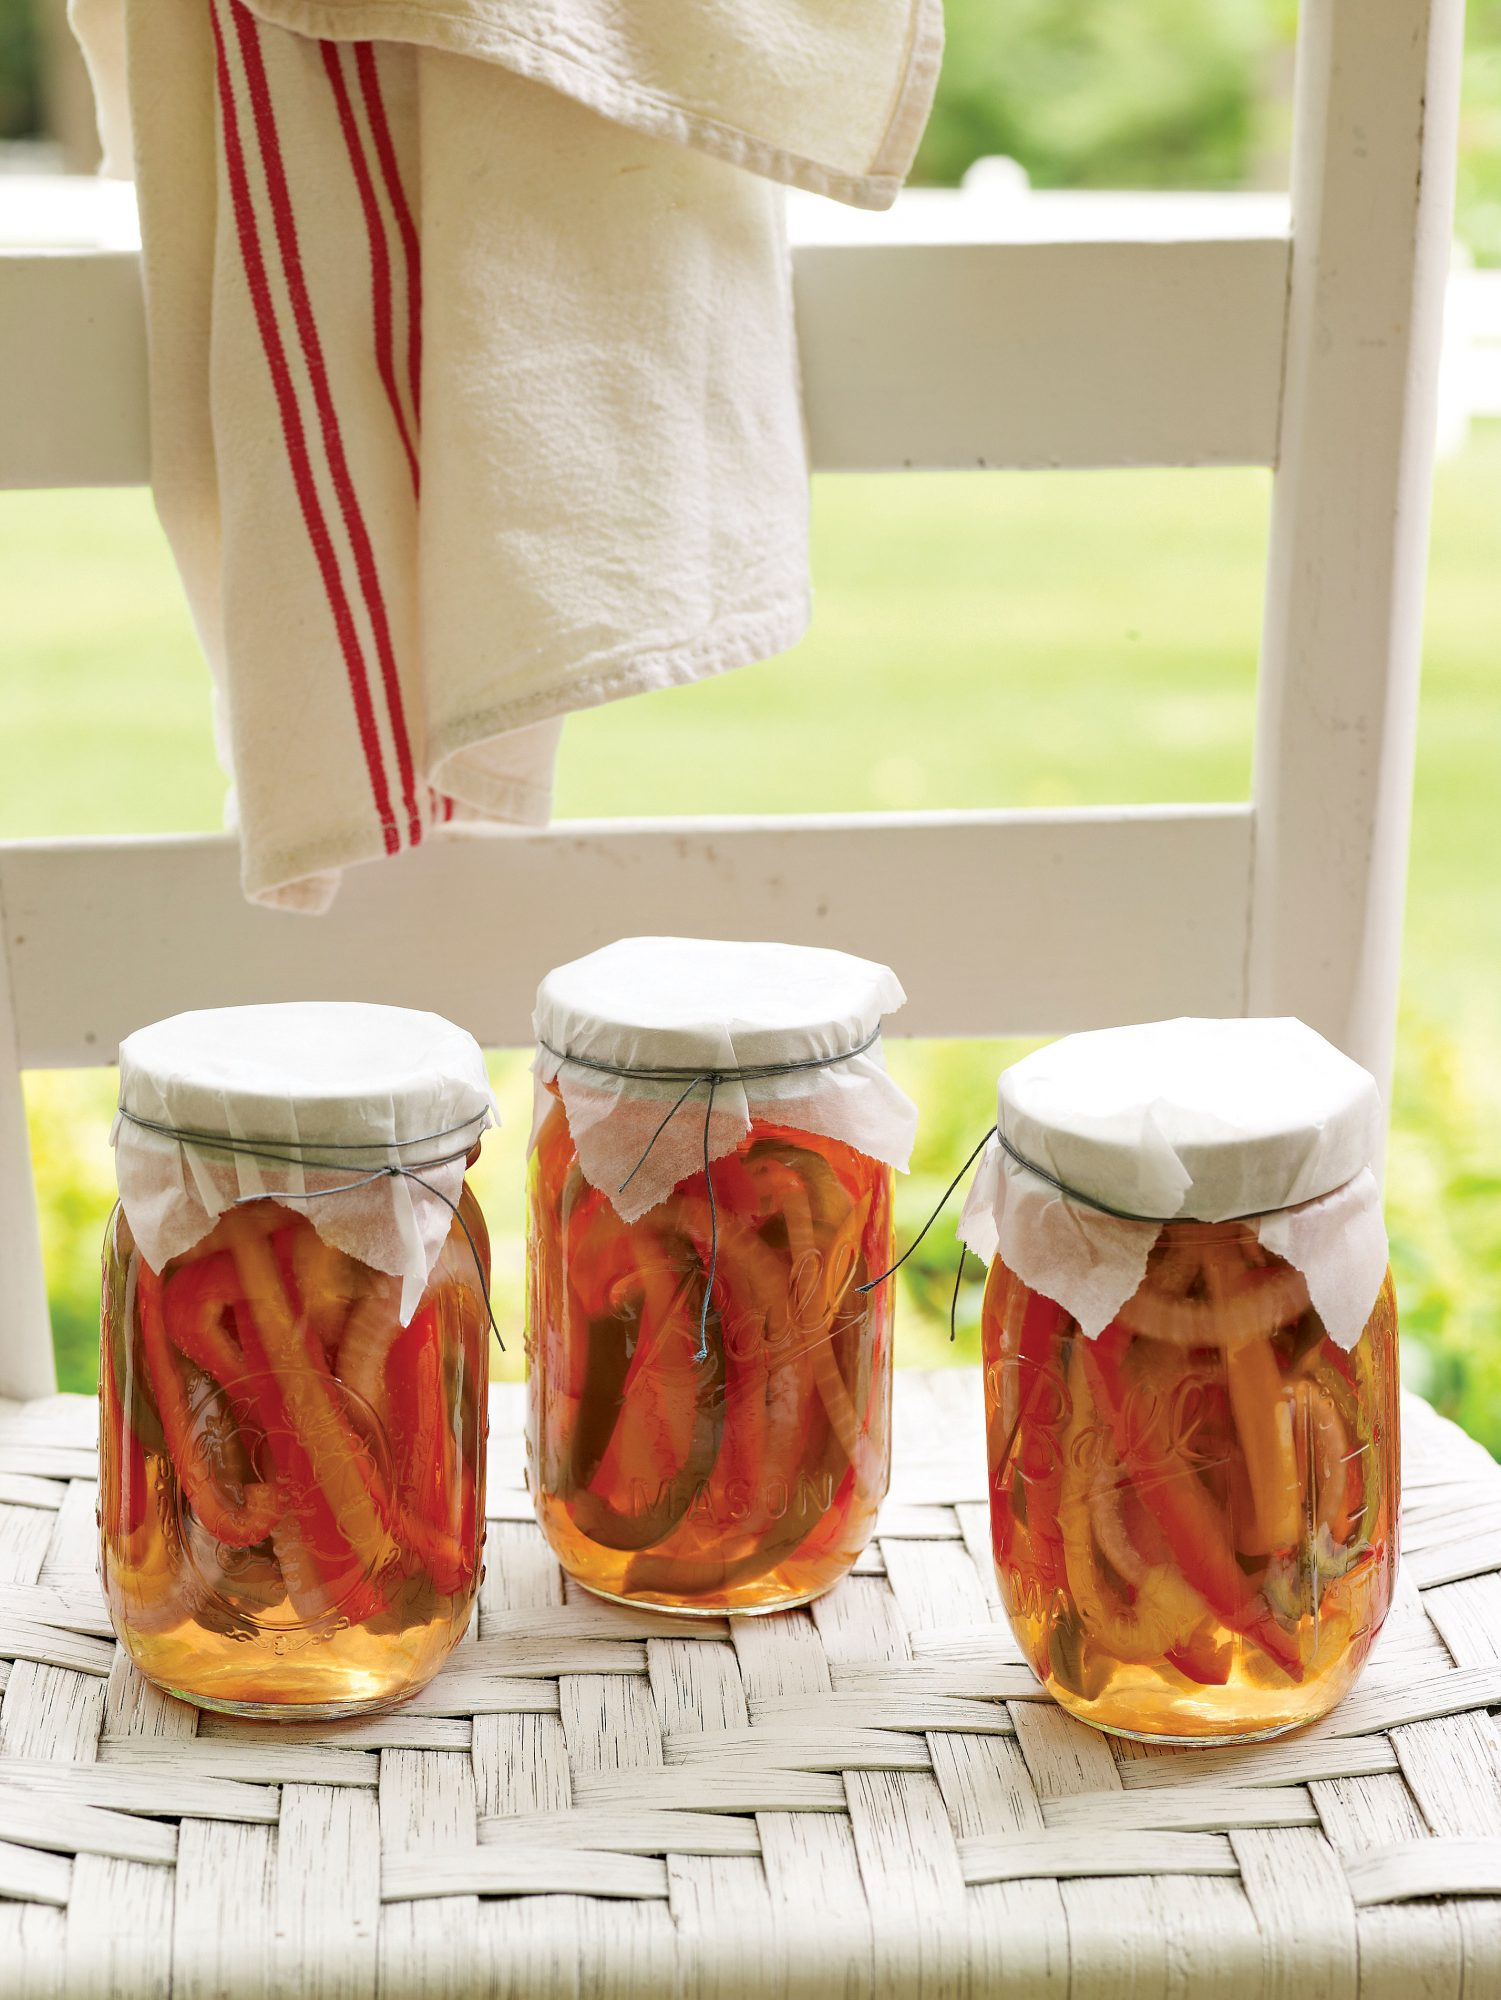 Pickled Peppers & Onions